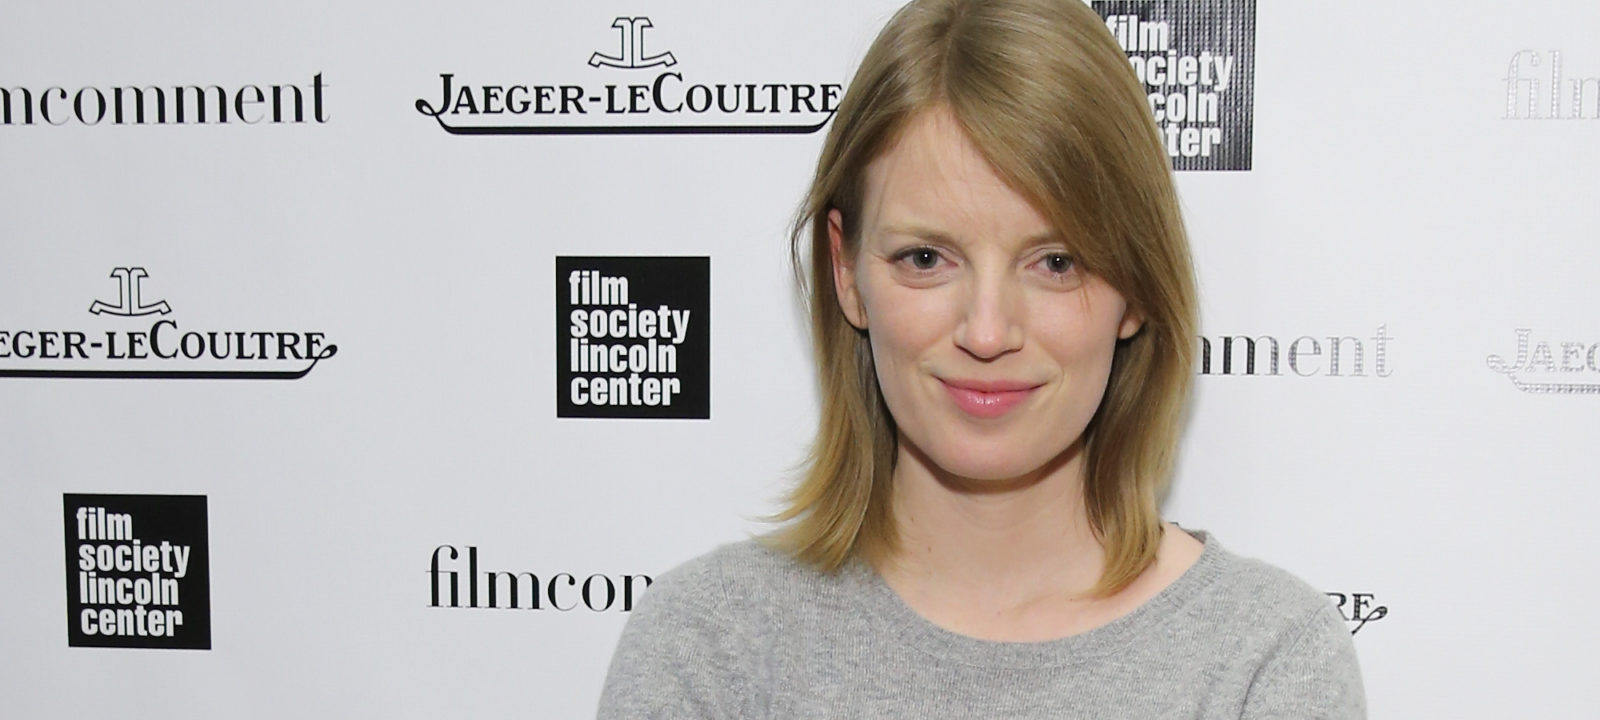 Sarah Polley attends The Film Society of Lincoln Center's Film Comment Best Films of 2013 Luncheon presented by Jaeger-Lecoultre at the Lambs' Club on January 7, 2014 in New York City.